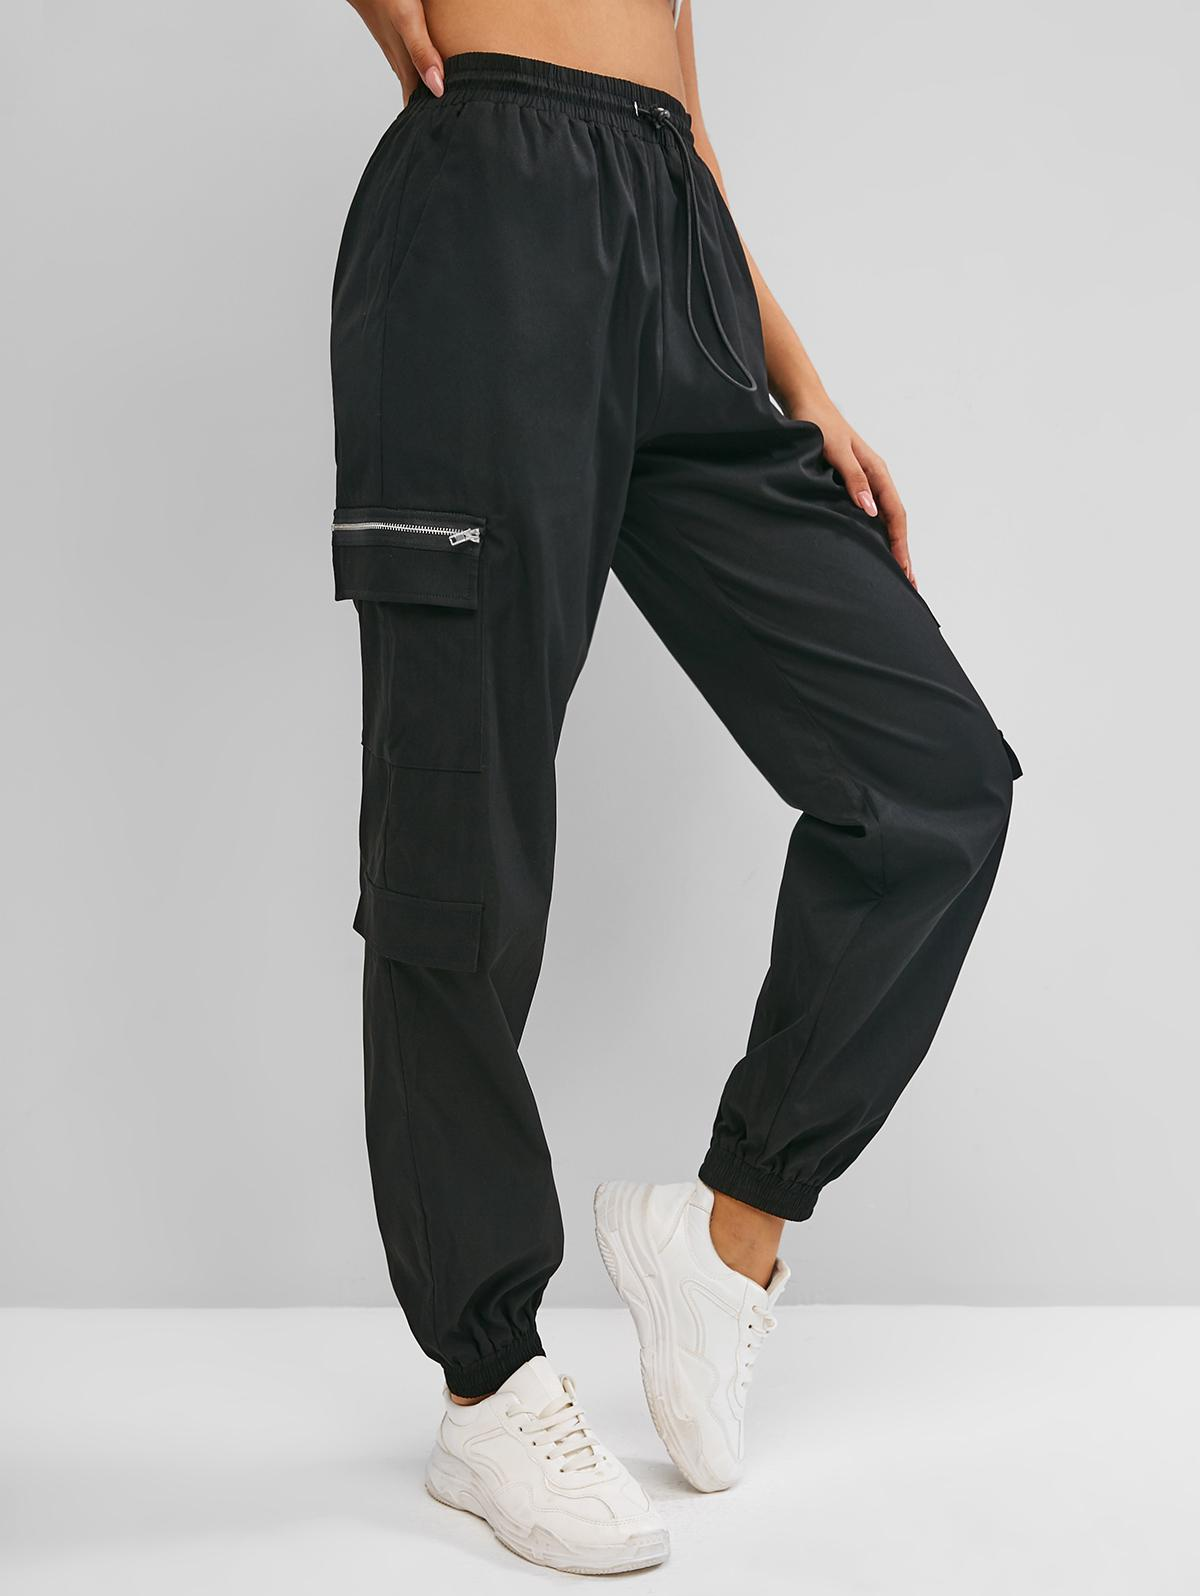 ZAFUL Zippered Drawstring Cargo Pants